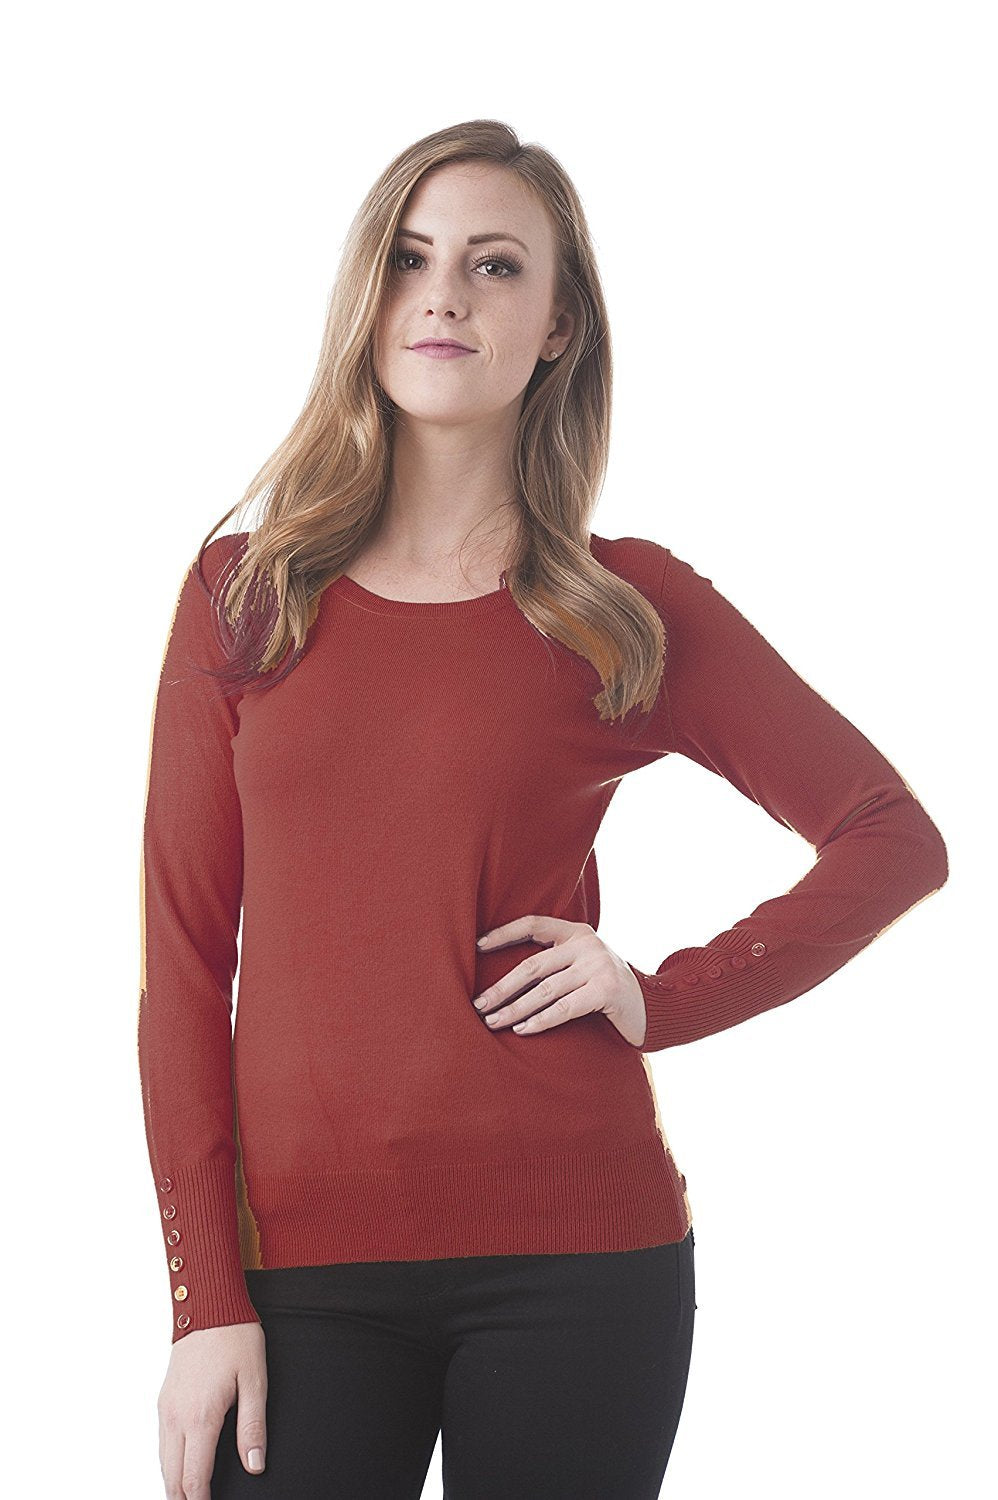 Khanomak Long Sleeve Crewneck Knit Sweater Top With Button On The Sleeves